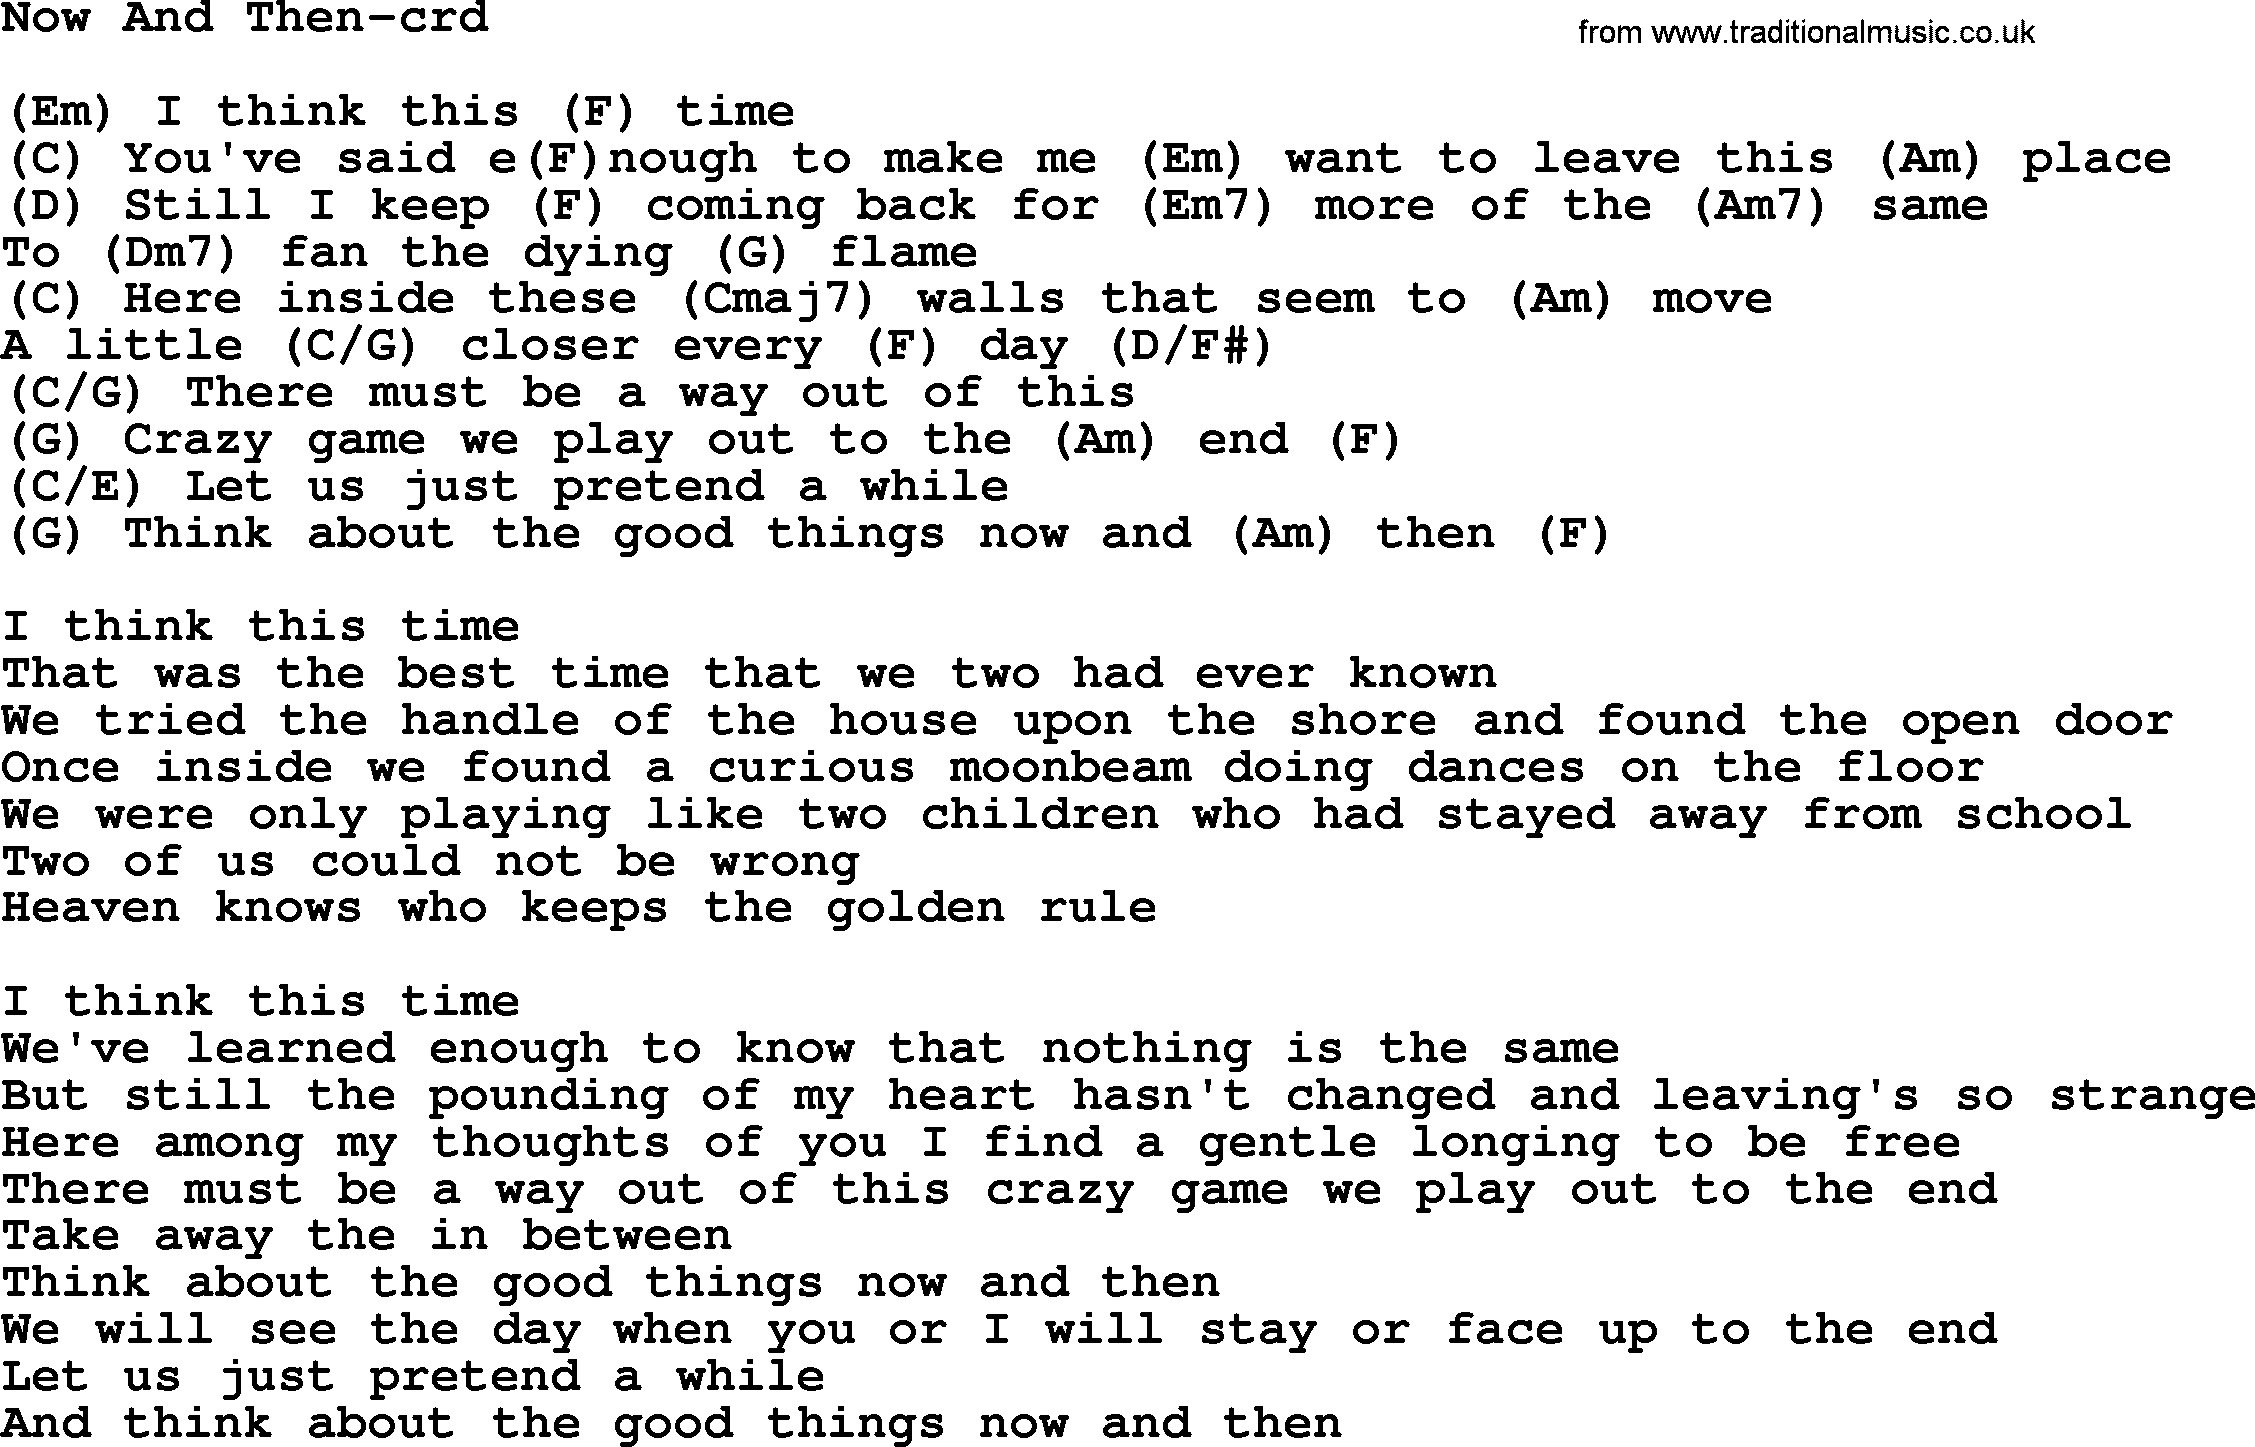 Now And Then, by Gordon Lightfoot, lyrics and chords